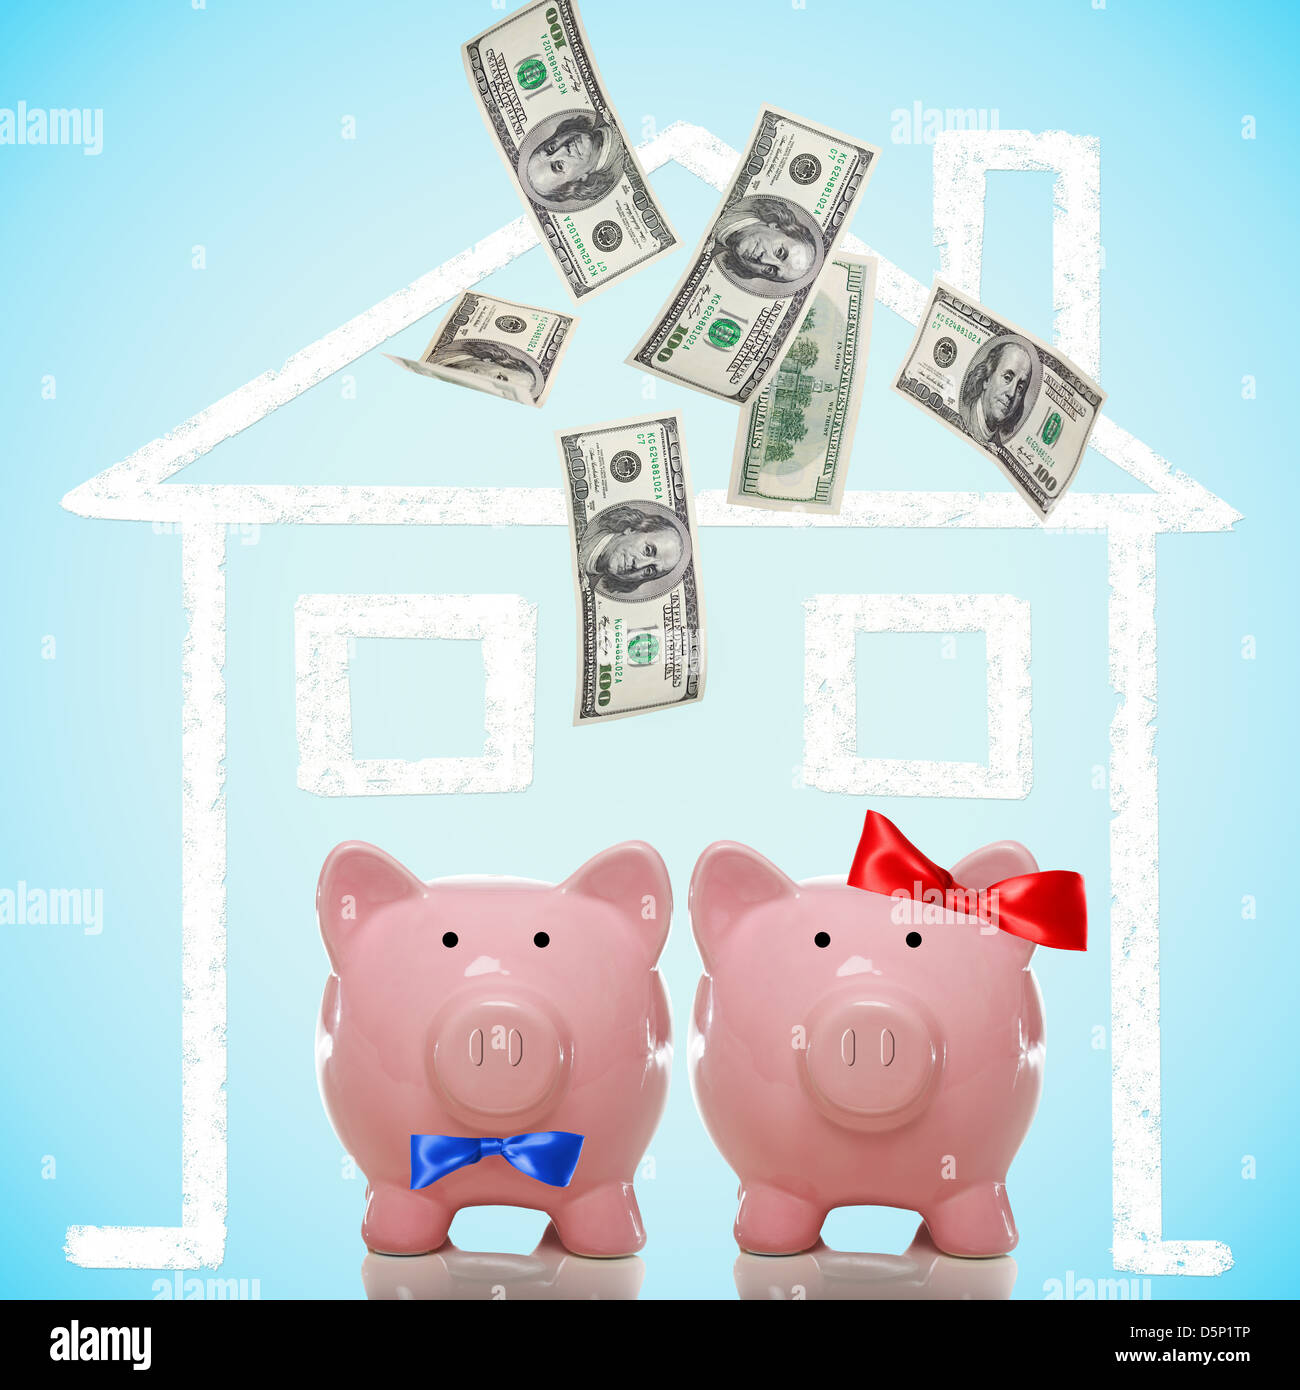 Piggy bank couple buying or dreaming of a new home with flying money - Stock Image